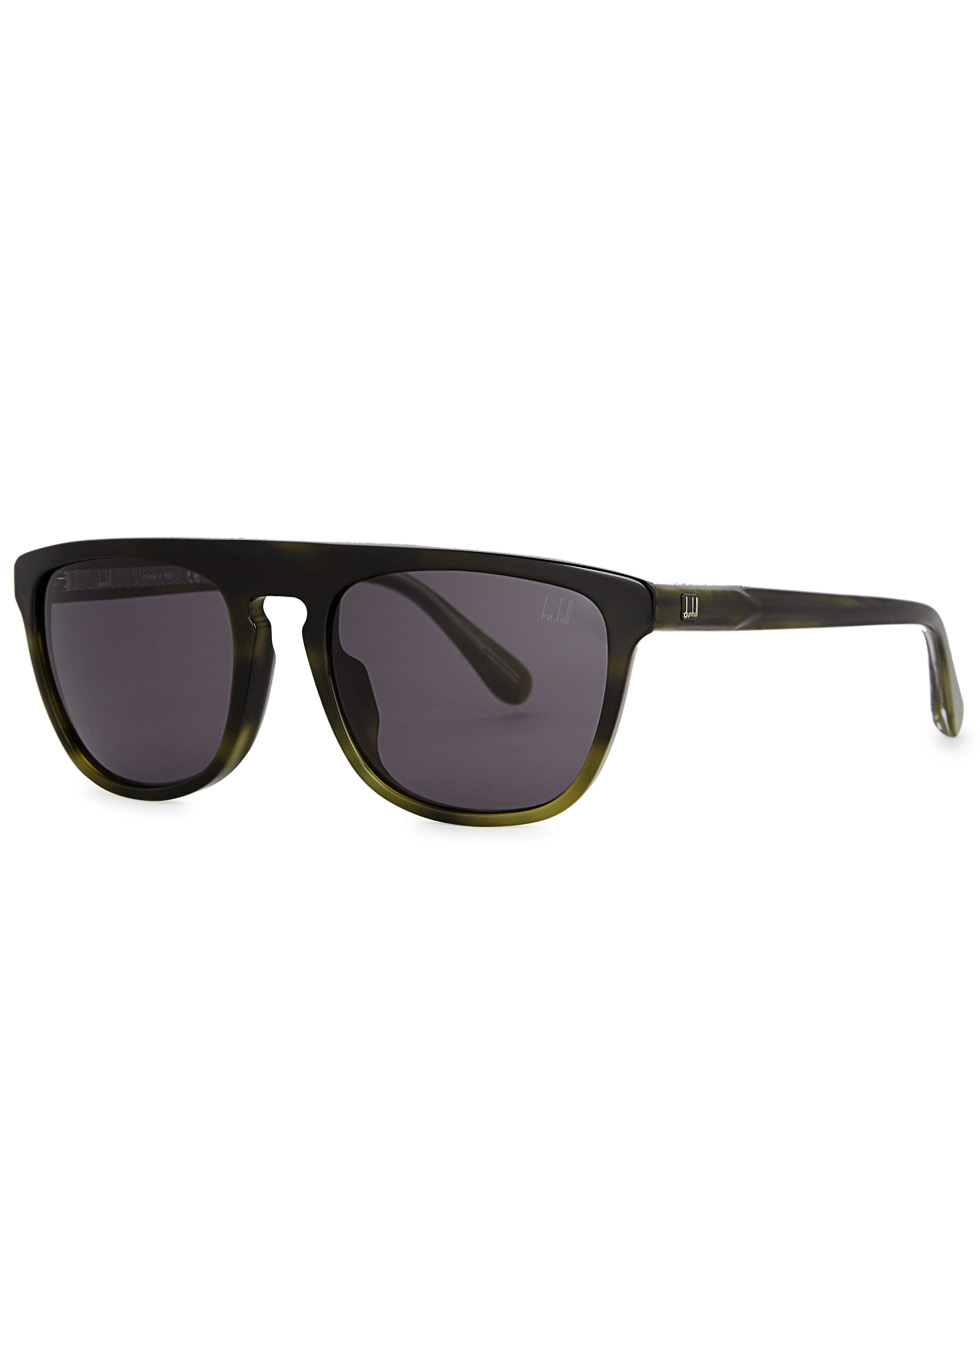 DUNHILL LONDON Olive Tortoiseshell D-Frame Sunglasses in Green